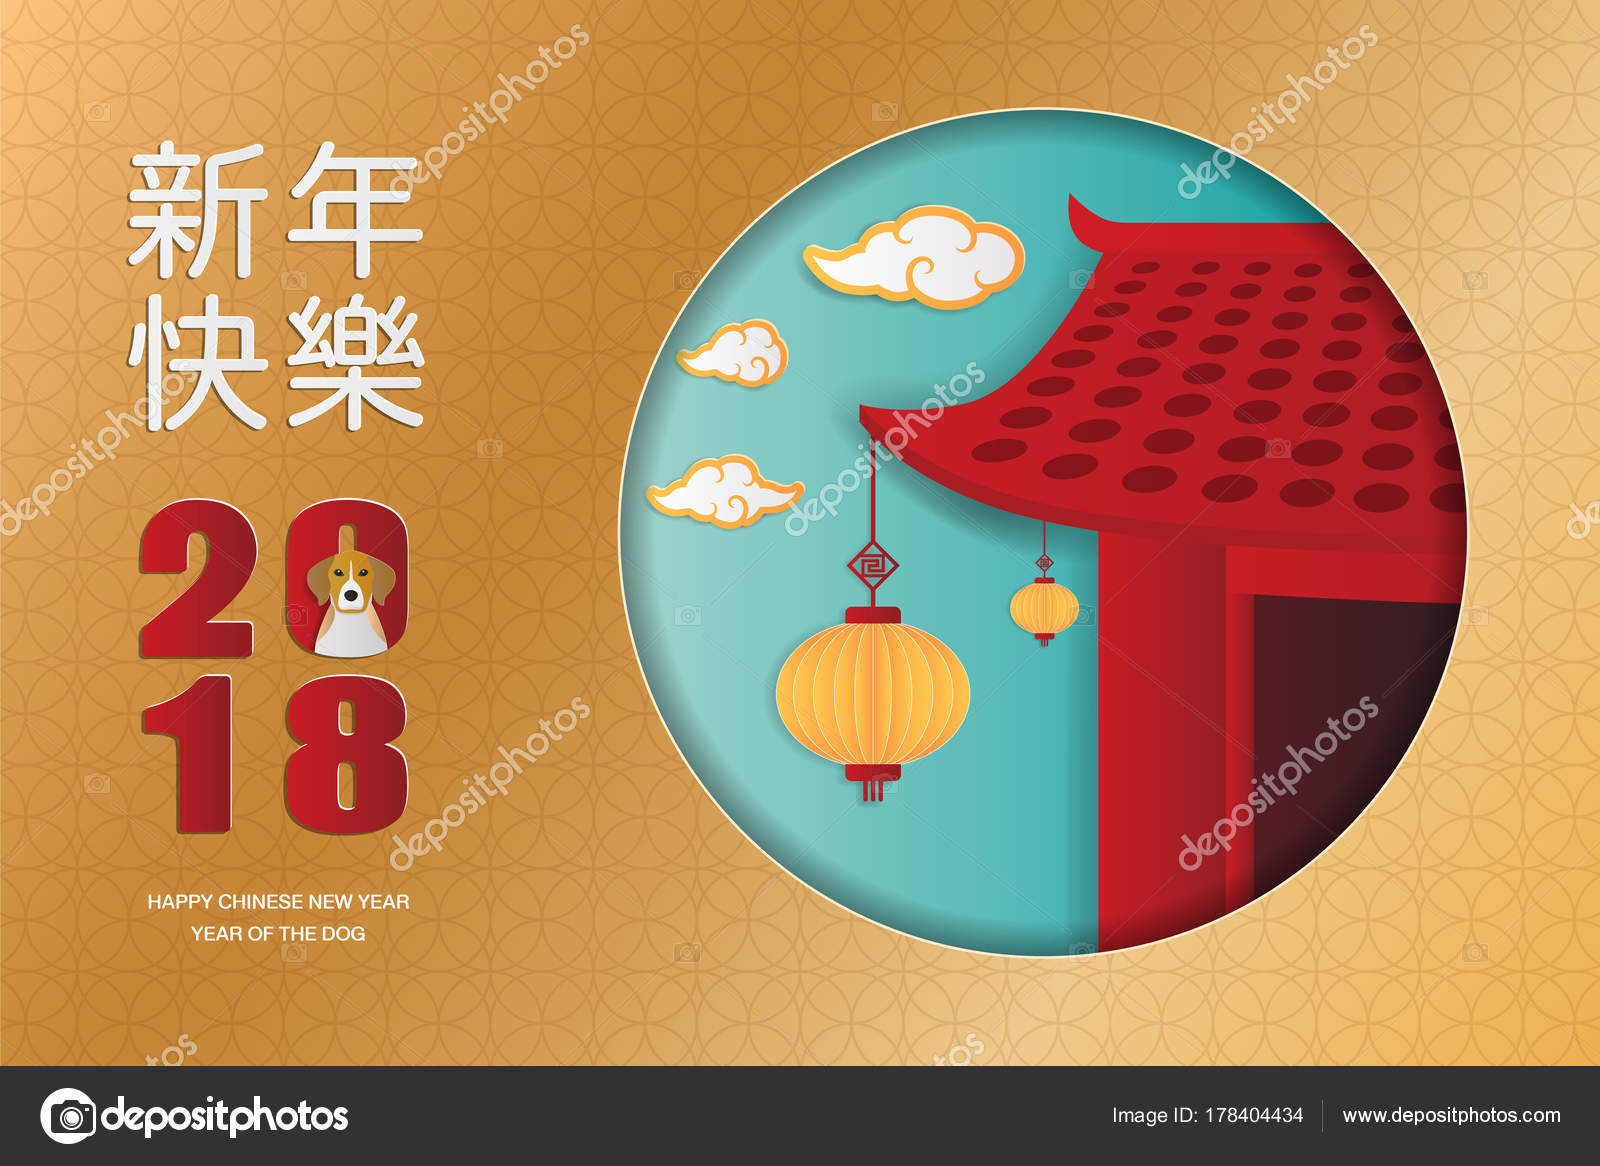 2018 Chinese New Year Greeting Card With Dog Chinese Temple